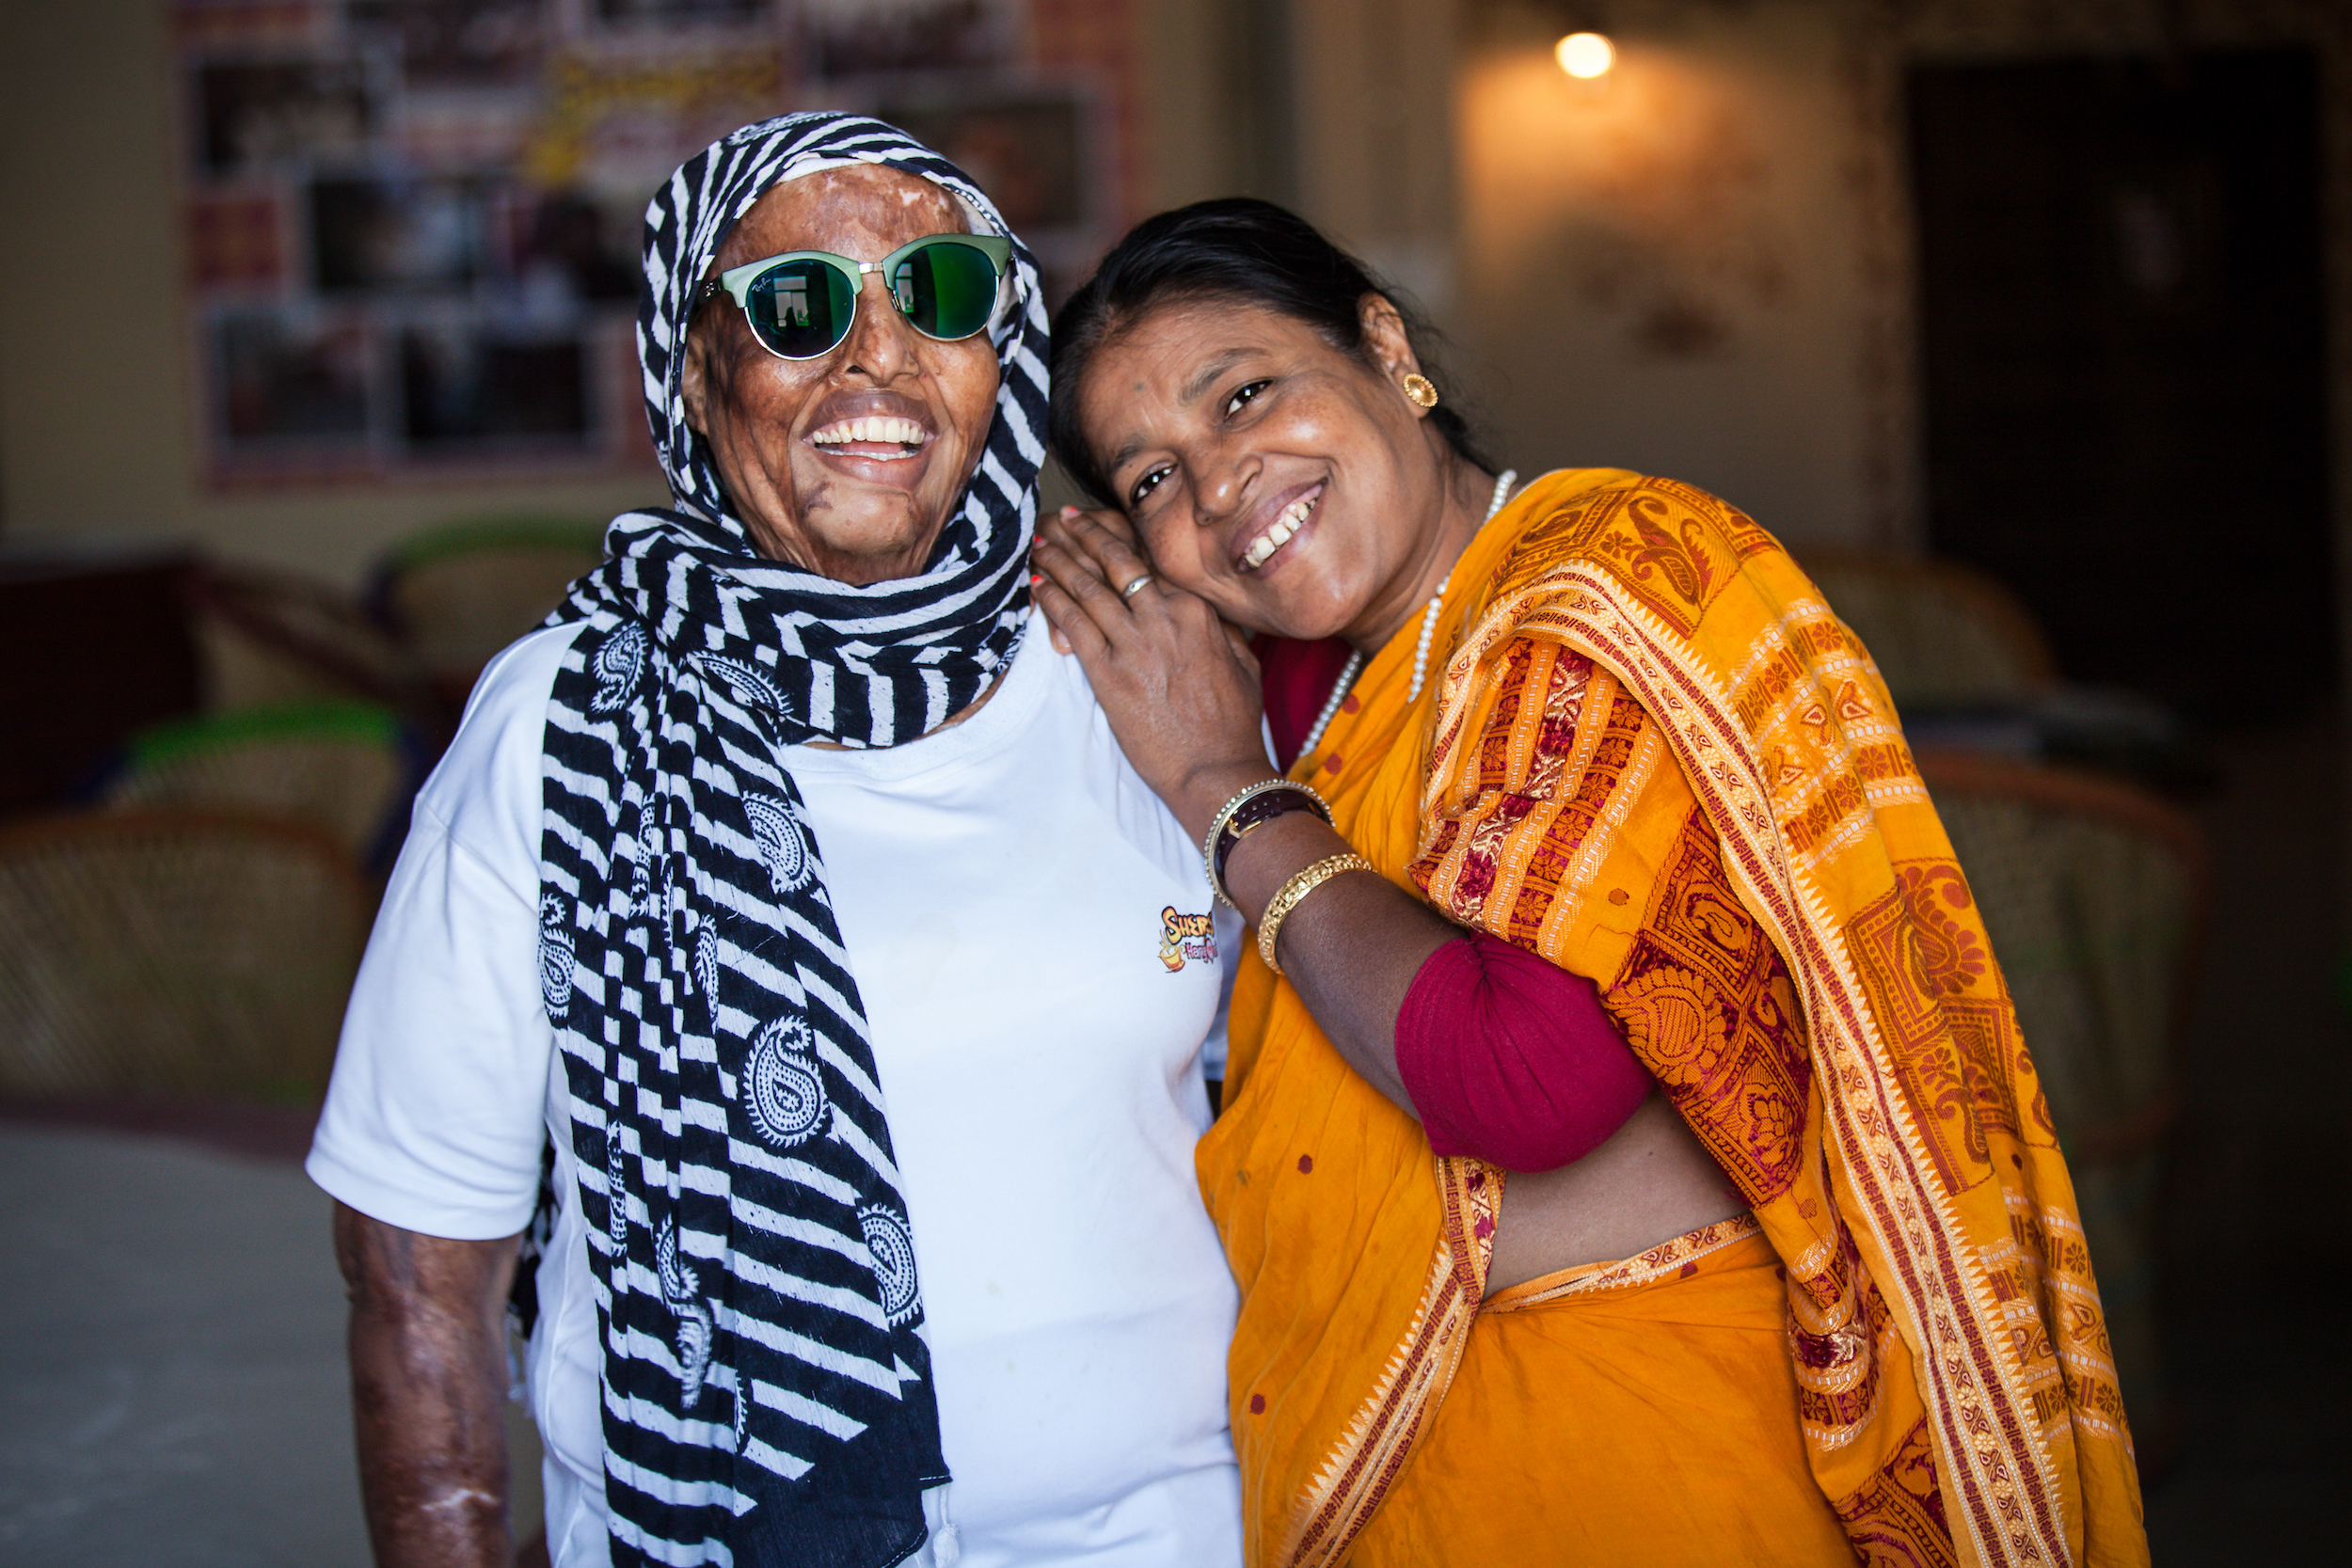 Rani (left), an acid attack survivor, pictured with her mother, Kavita, at Sheroes Cafe.